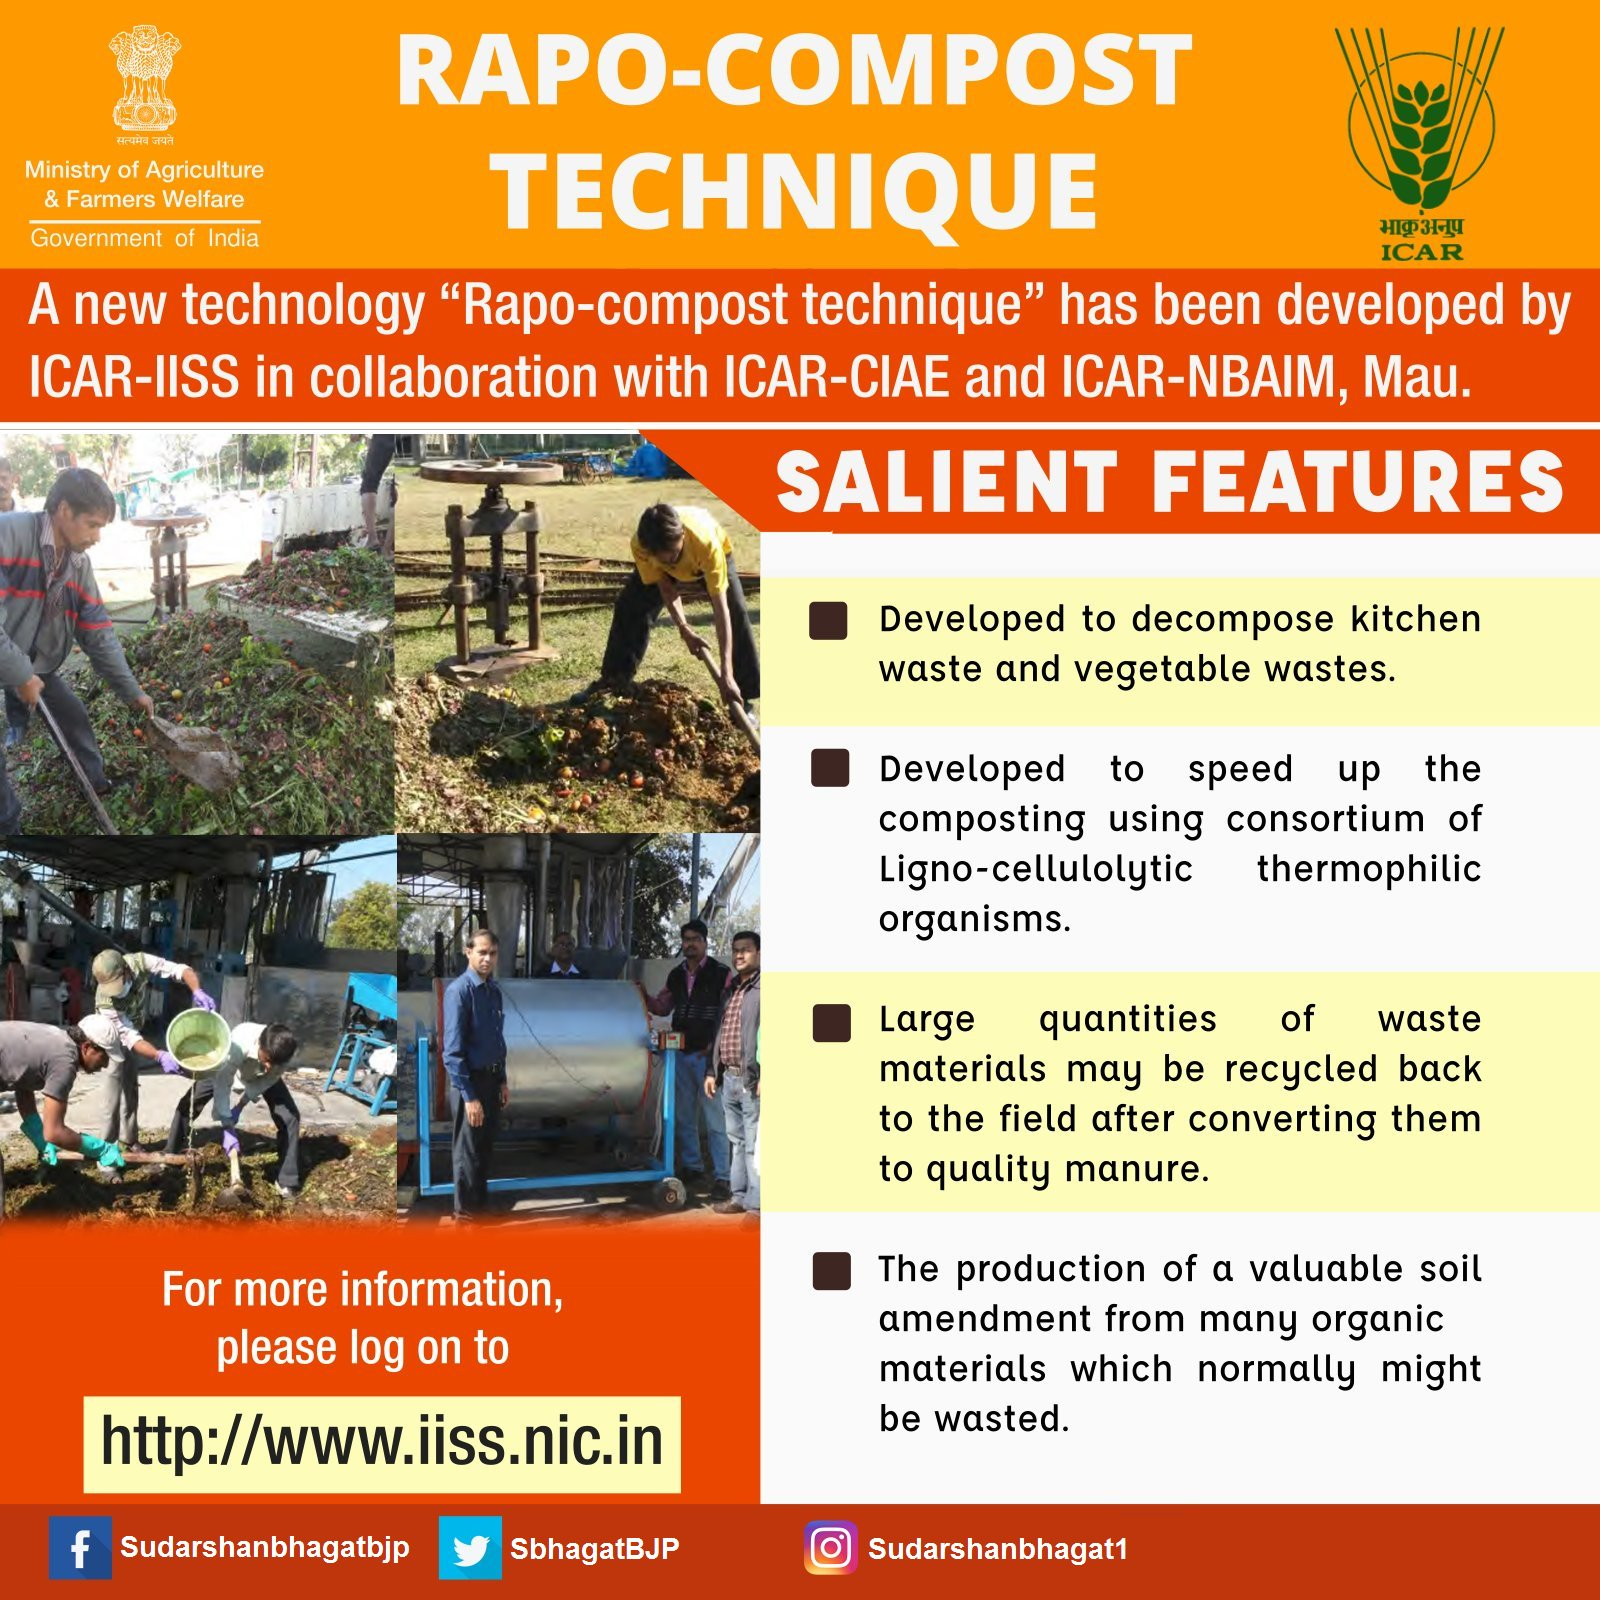 """A new technology """"Rapo-compost"""" has been developed by ICAR-IISS in collaboration with ICAR-CIAE and ICAR-NBAIM, Mau. #TransformingIndia https://t.co/i9PuvNIflc"""